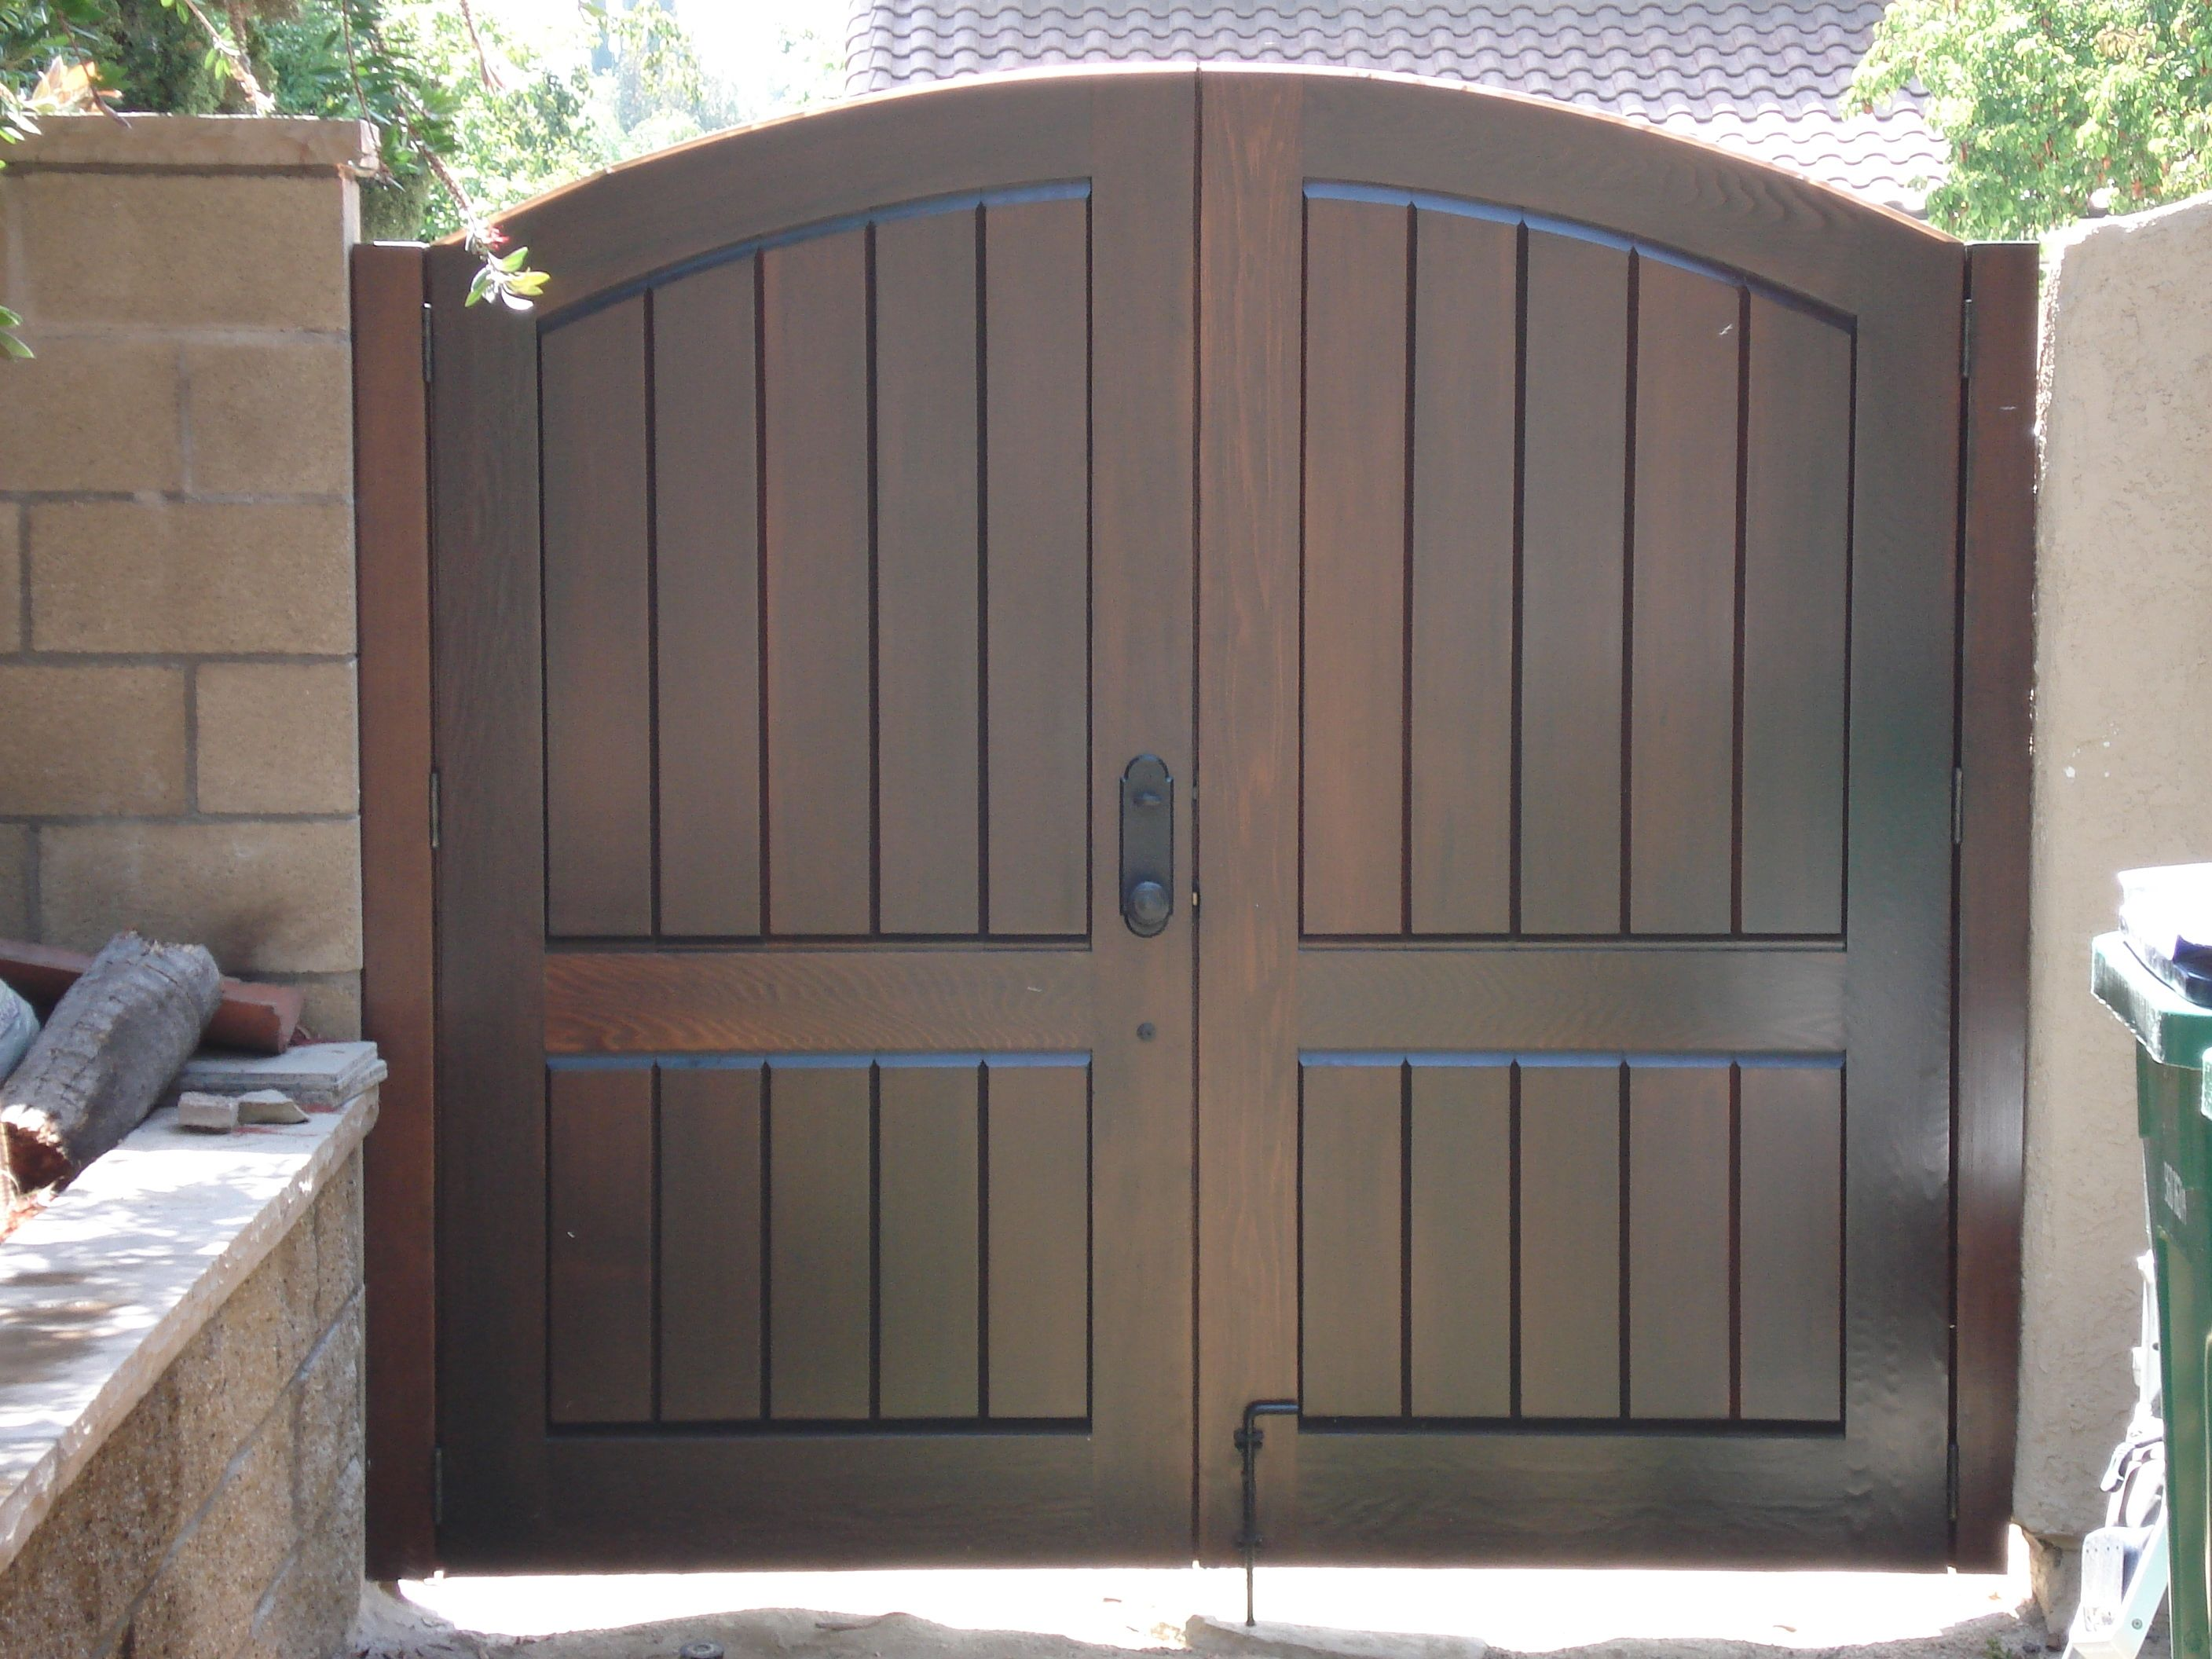 Heavy duty wood gate hinges - Custom Wood Gates By Garden Passages Premium Wood Gates Features Clean Double Gate Premium Stain Wood Gatesheavy Duty Hingesgarden